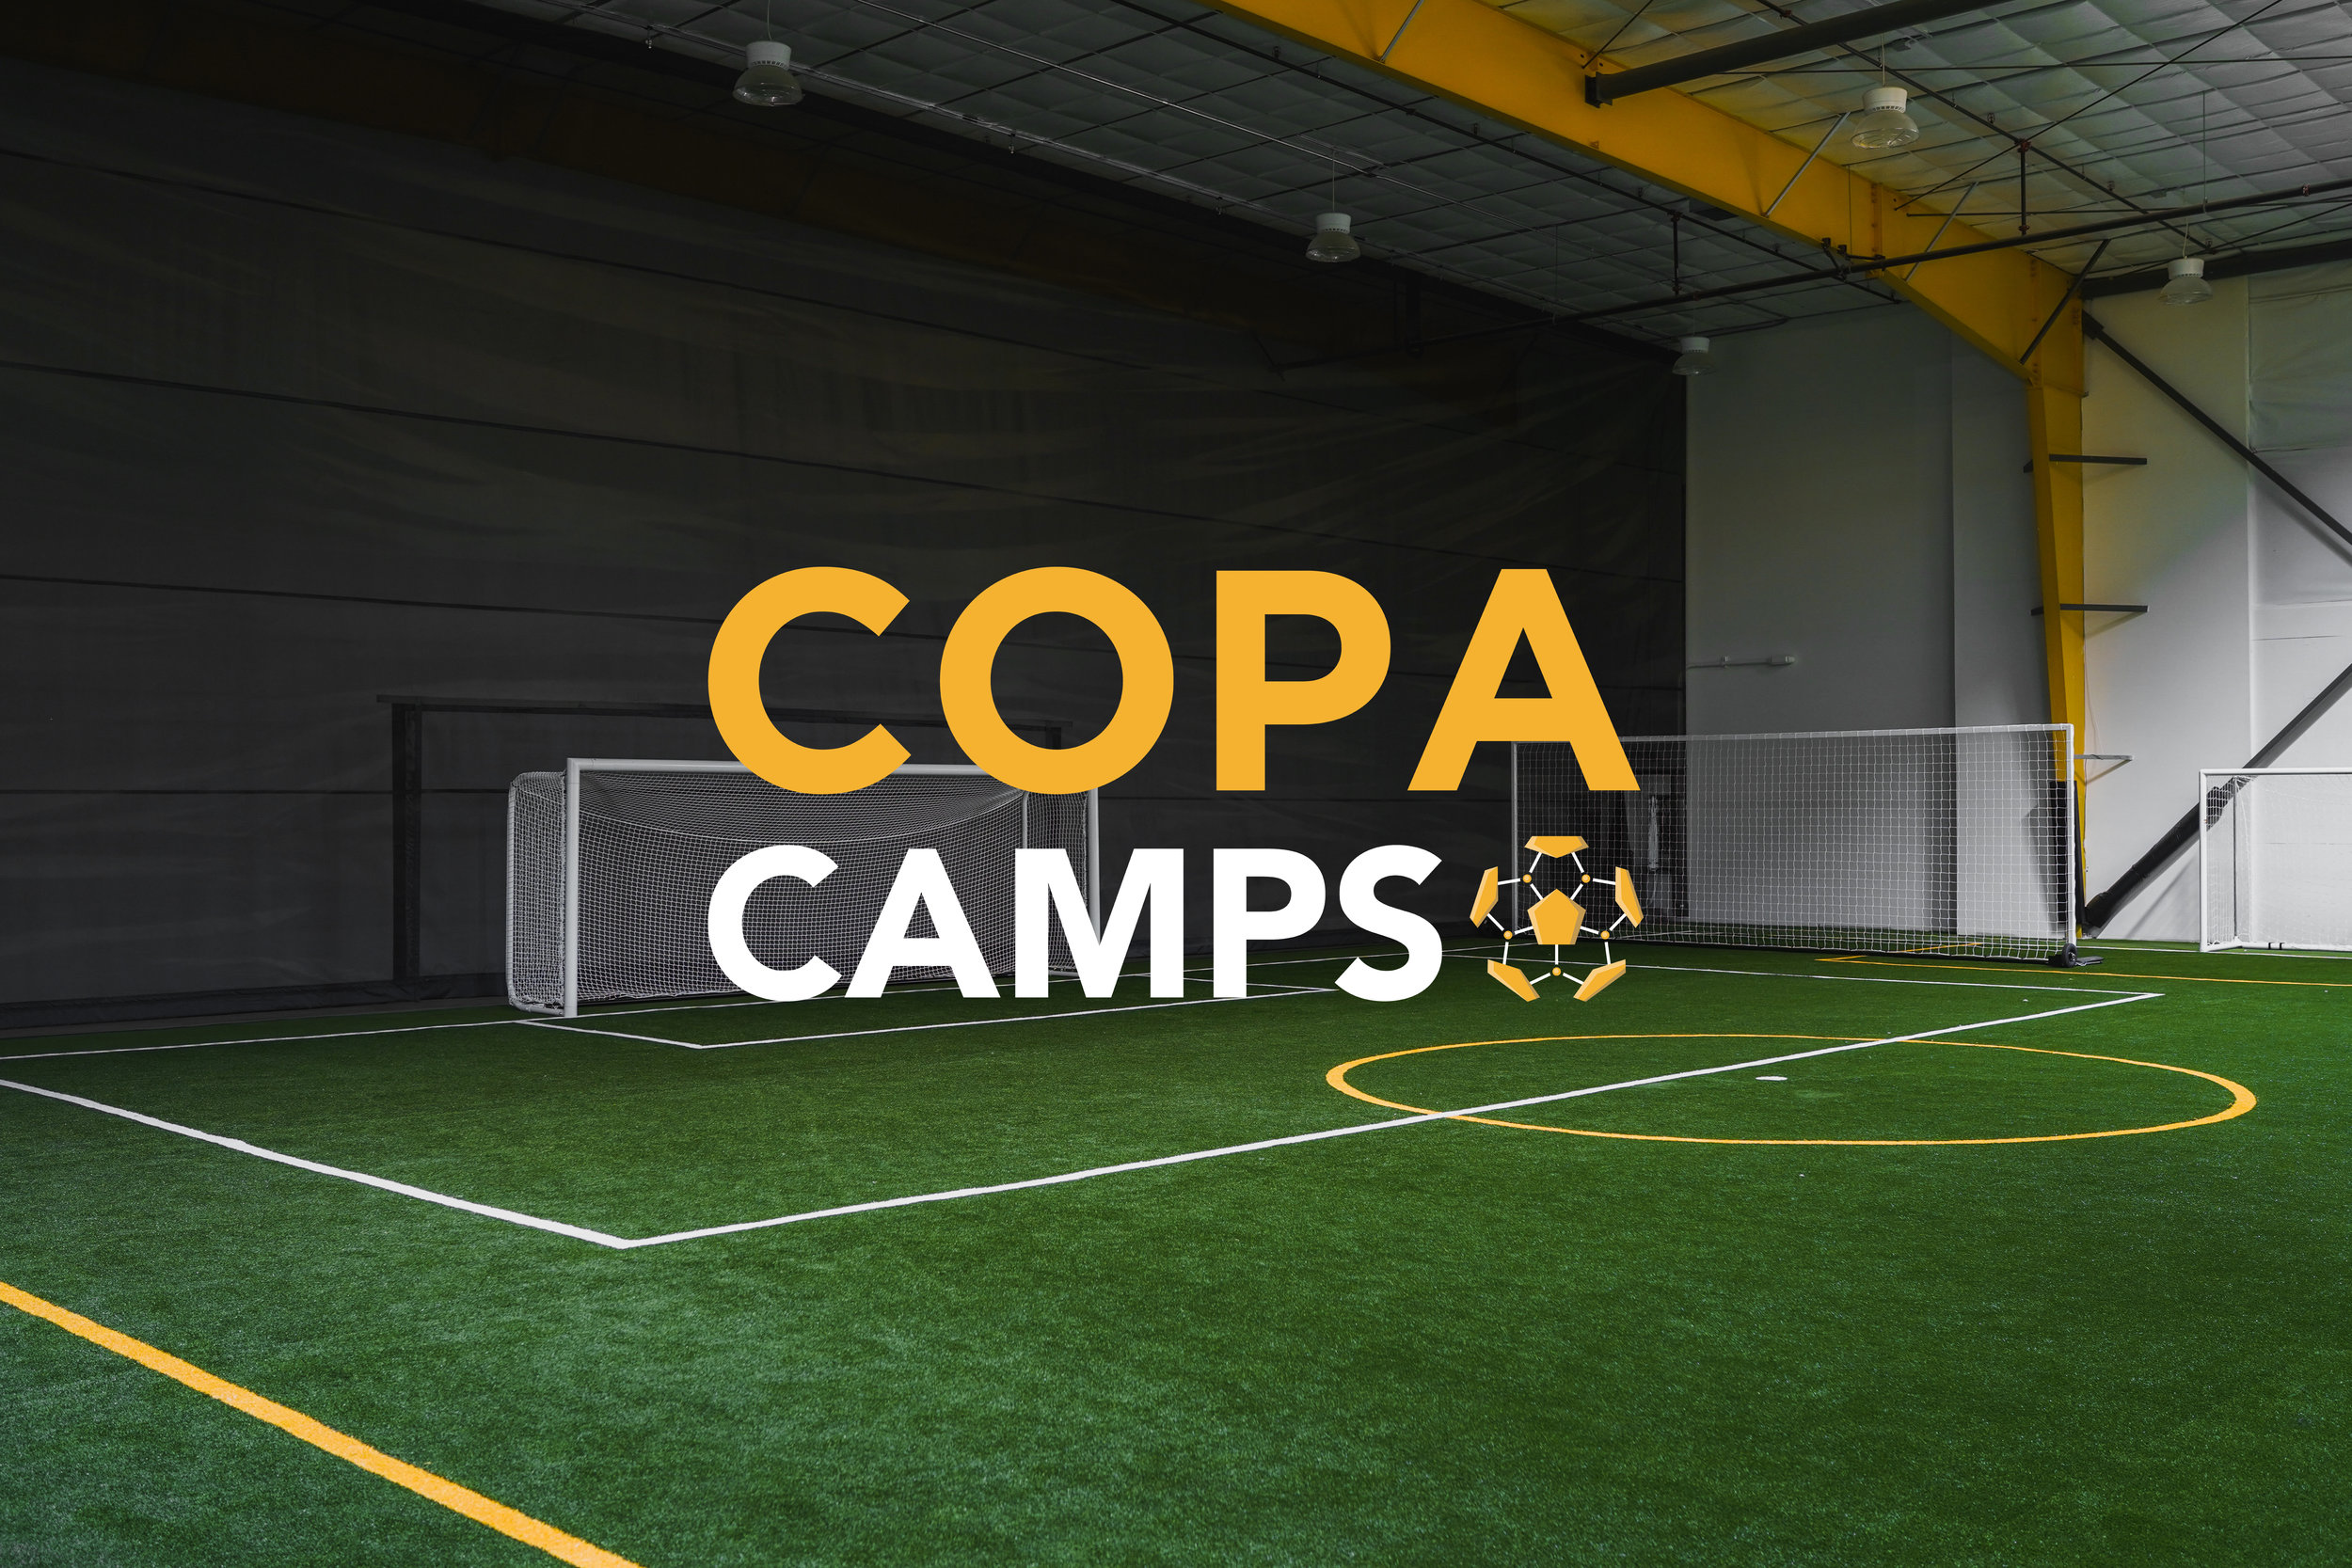 COPA Camps with logo.jpg